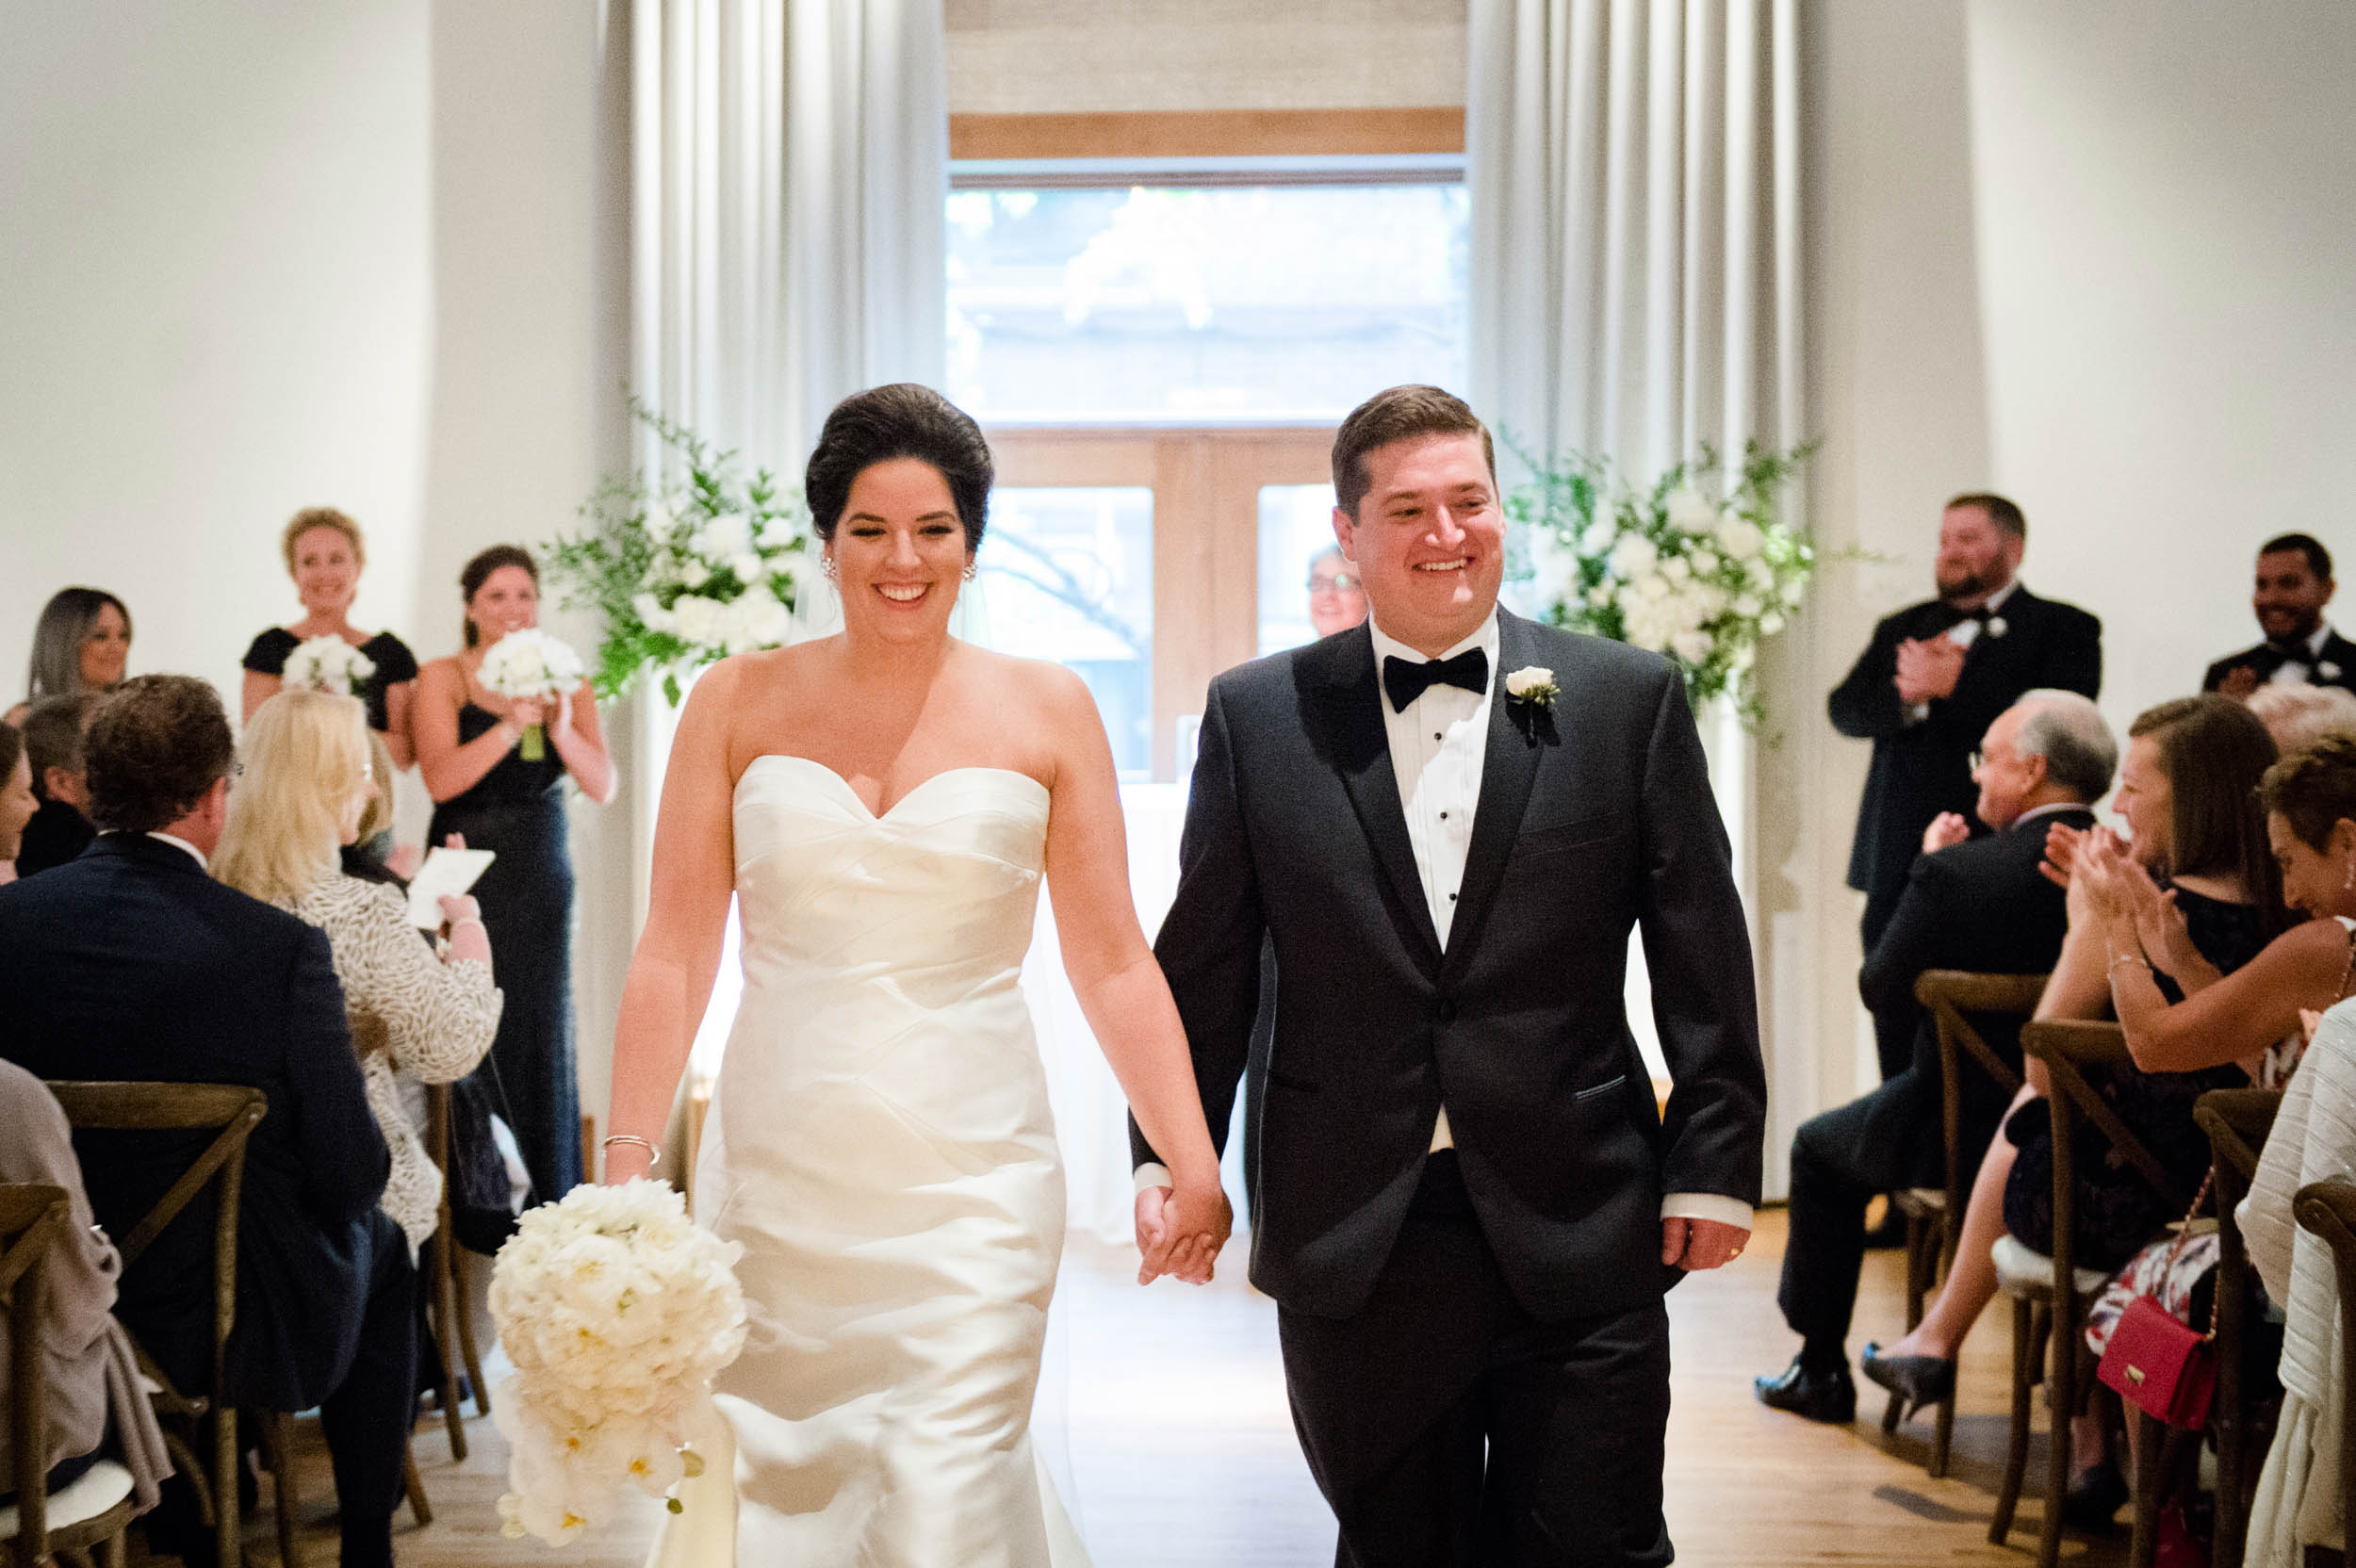 Studio This Is focuses on fine art and documentary wedding photography in Chicago.